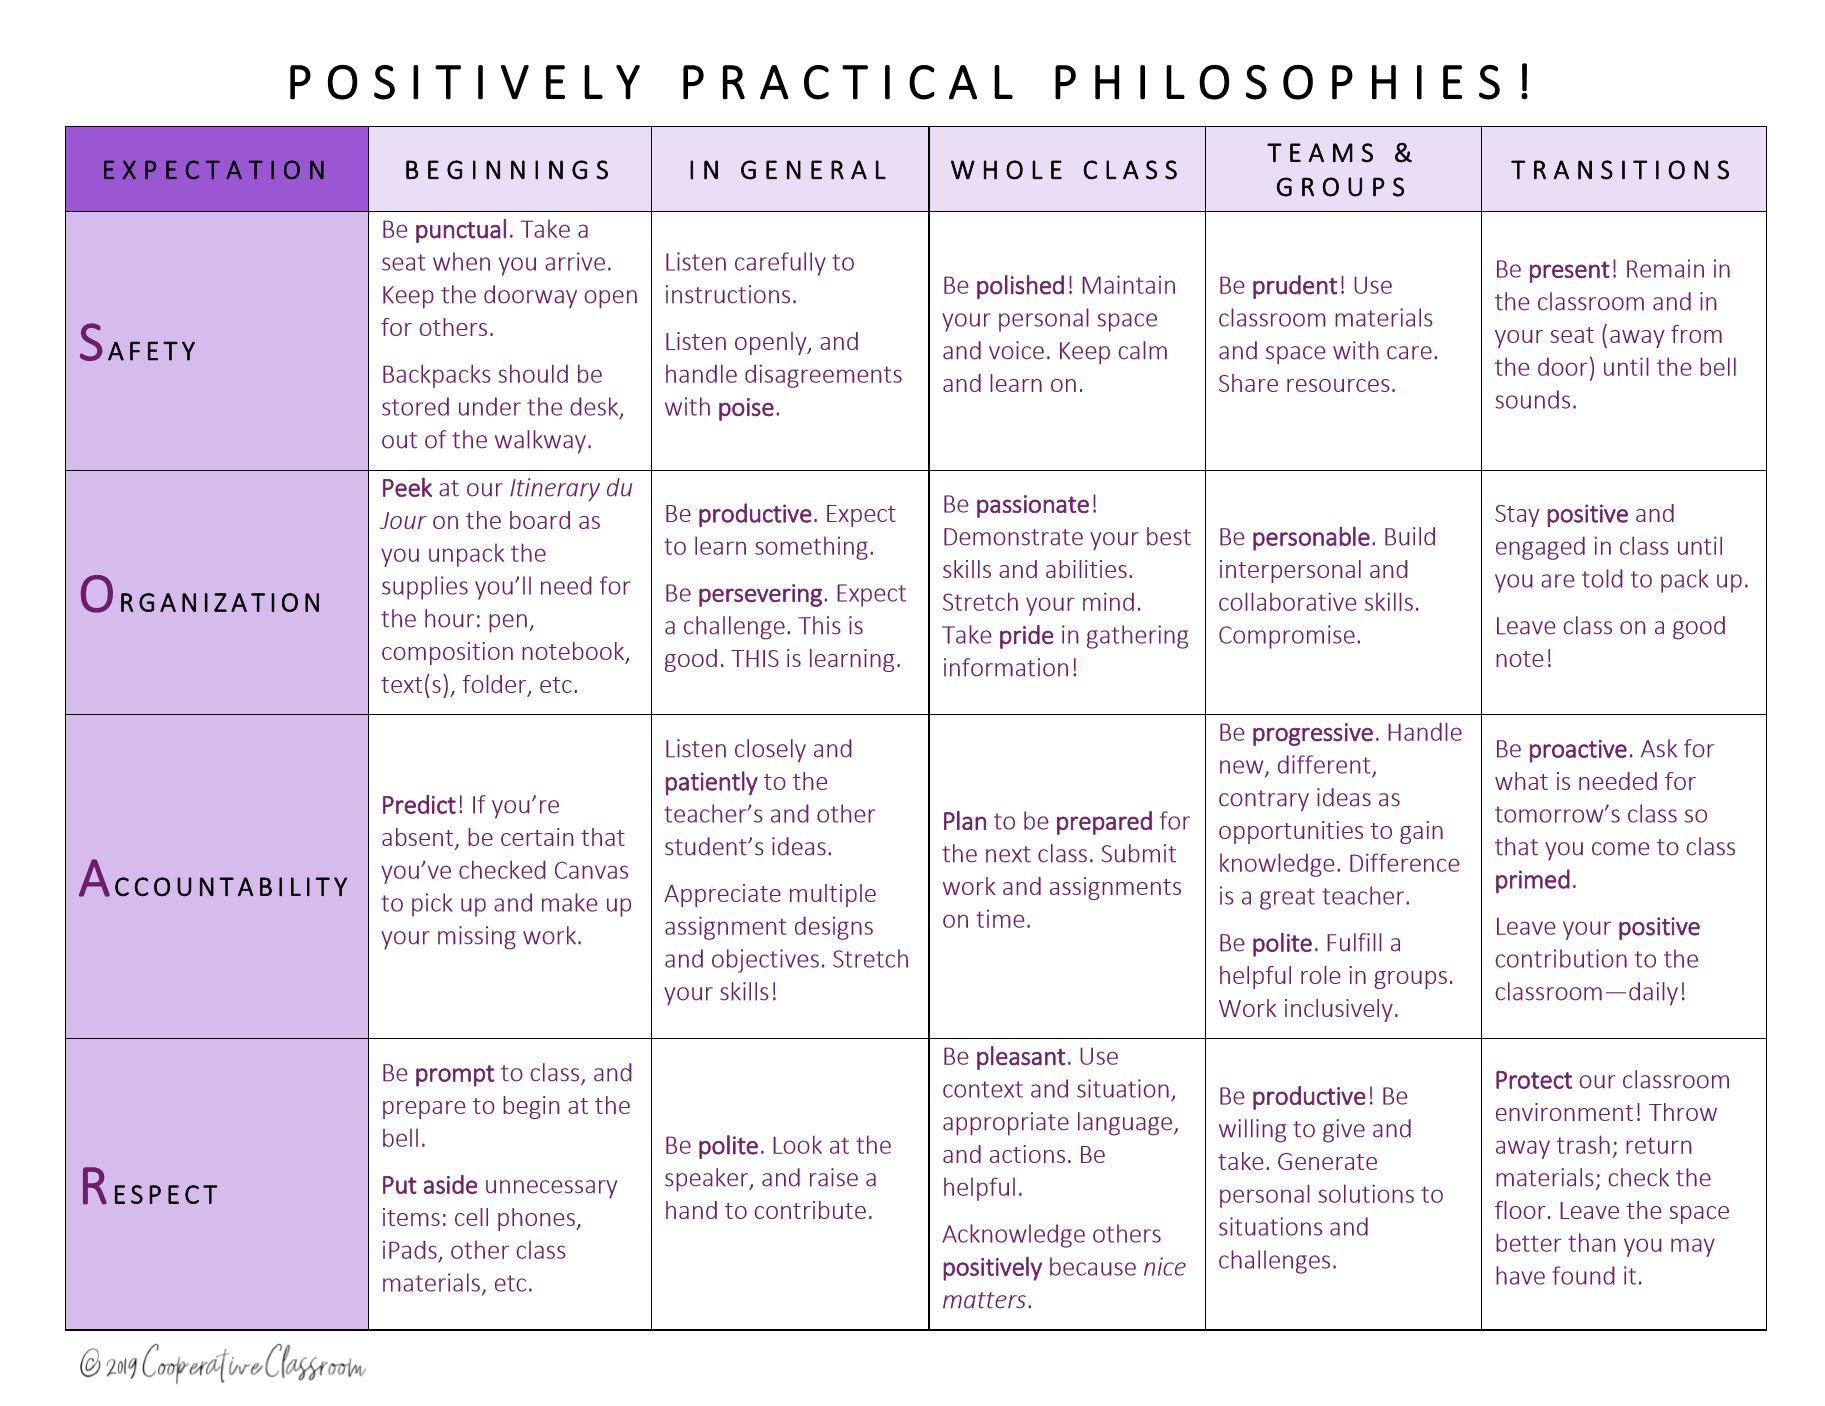 Positively Practical Pbis Philosophies Soar Matrix Ap